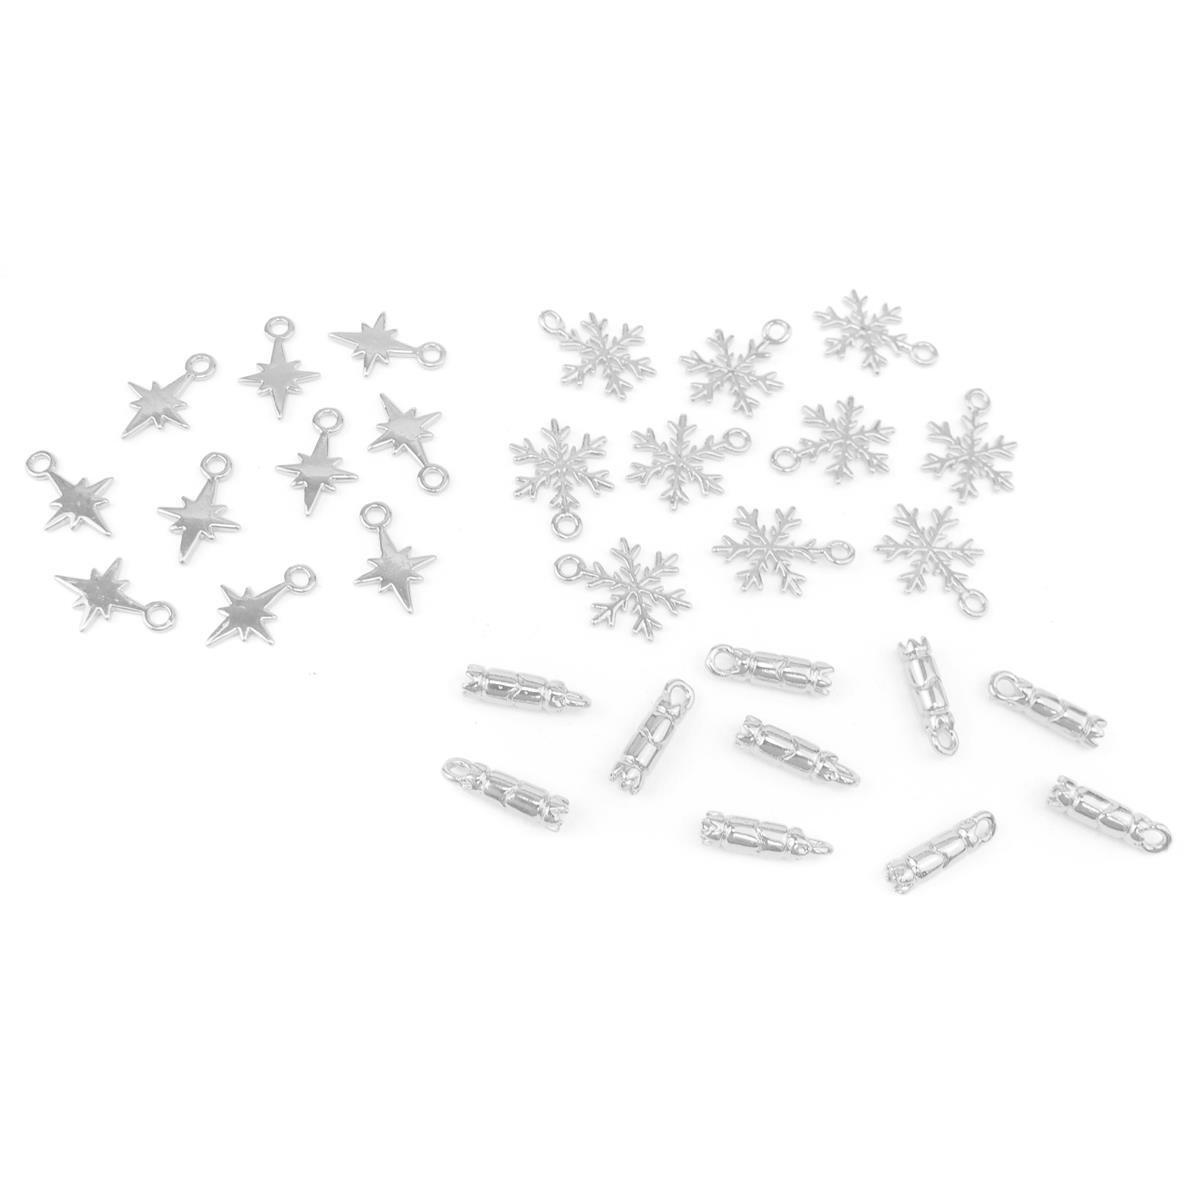 Charming Christmas #2: Silver Plated Base Metal Snowflake, Cracker ...